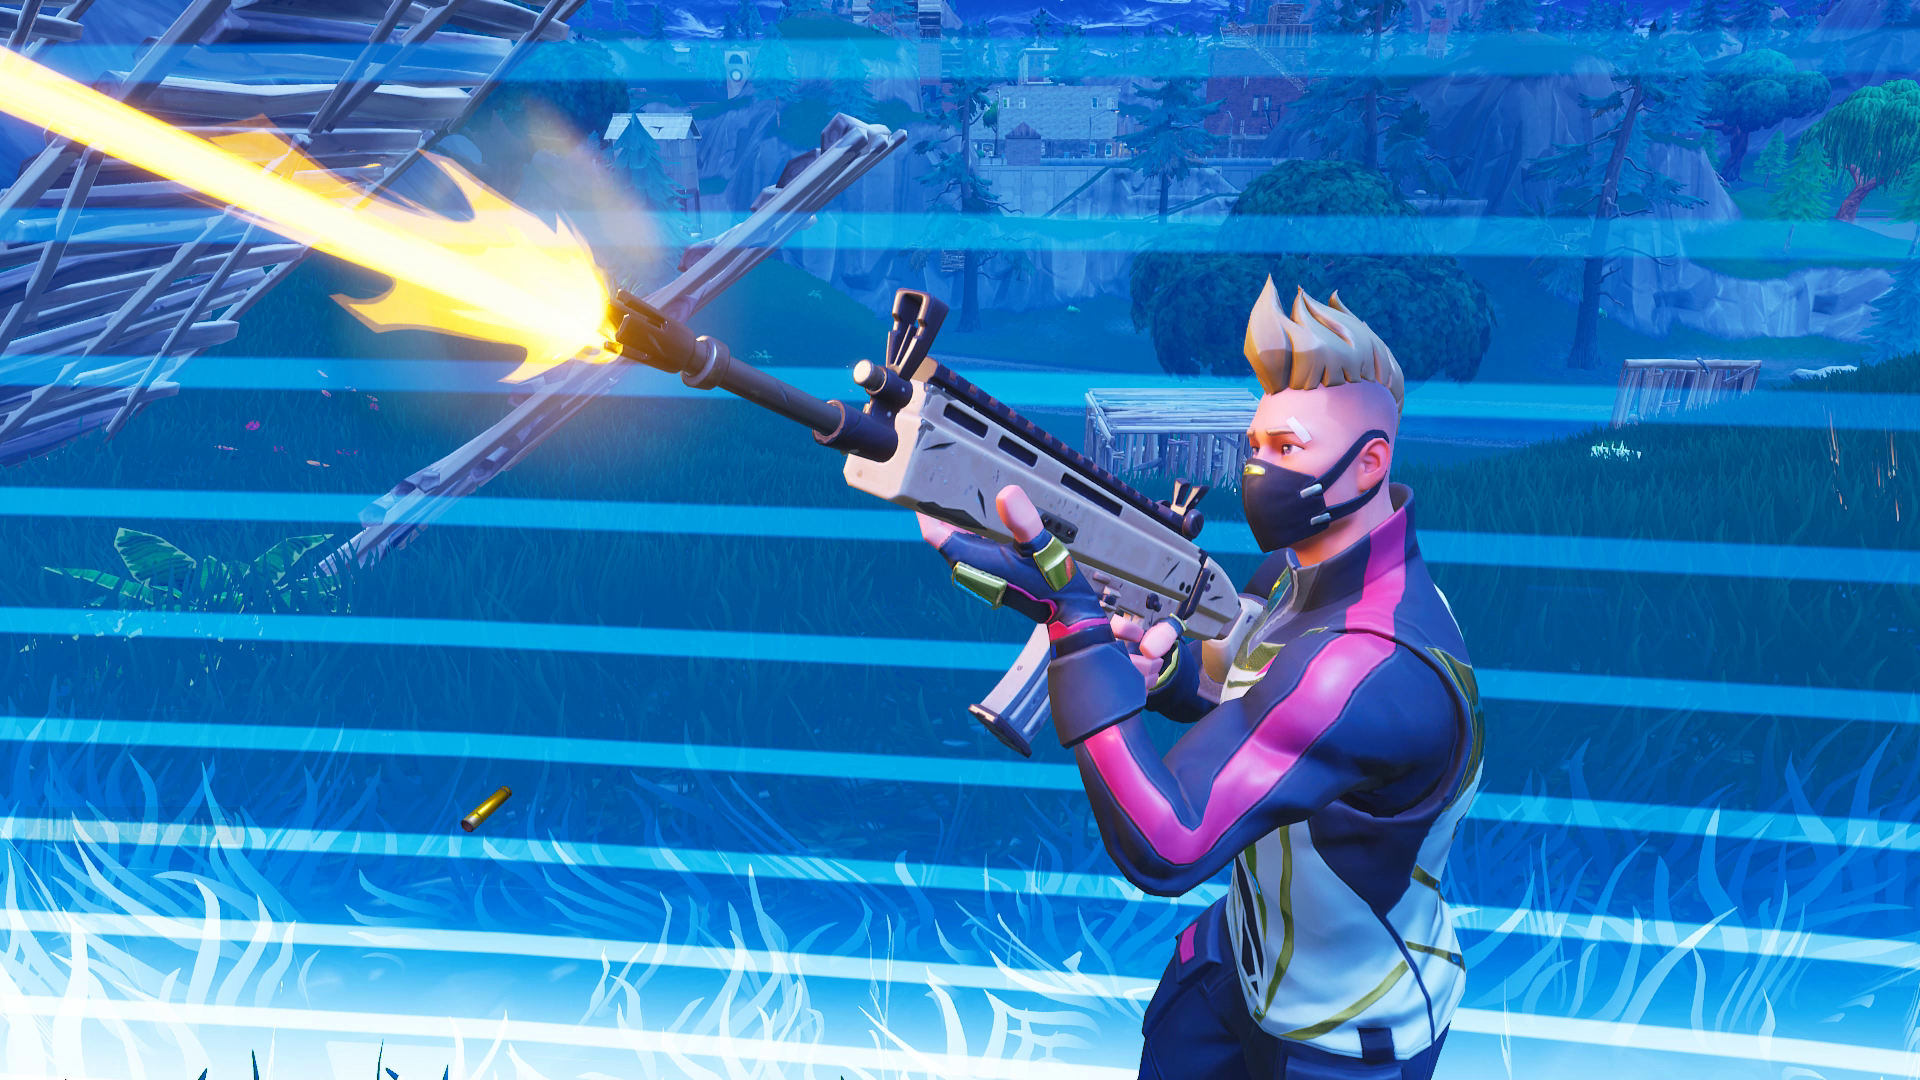 Watch Clip Fortnite The Red Ninja Season 8 Gameplay Prime Video The most recent and up to date information about ninja's fortnite sensitivity, video settings, keybinds, setup & config. red ninja season 8 gameplay